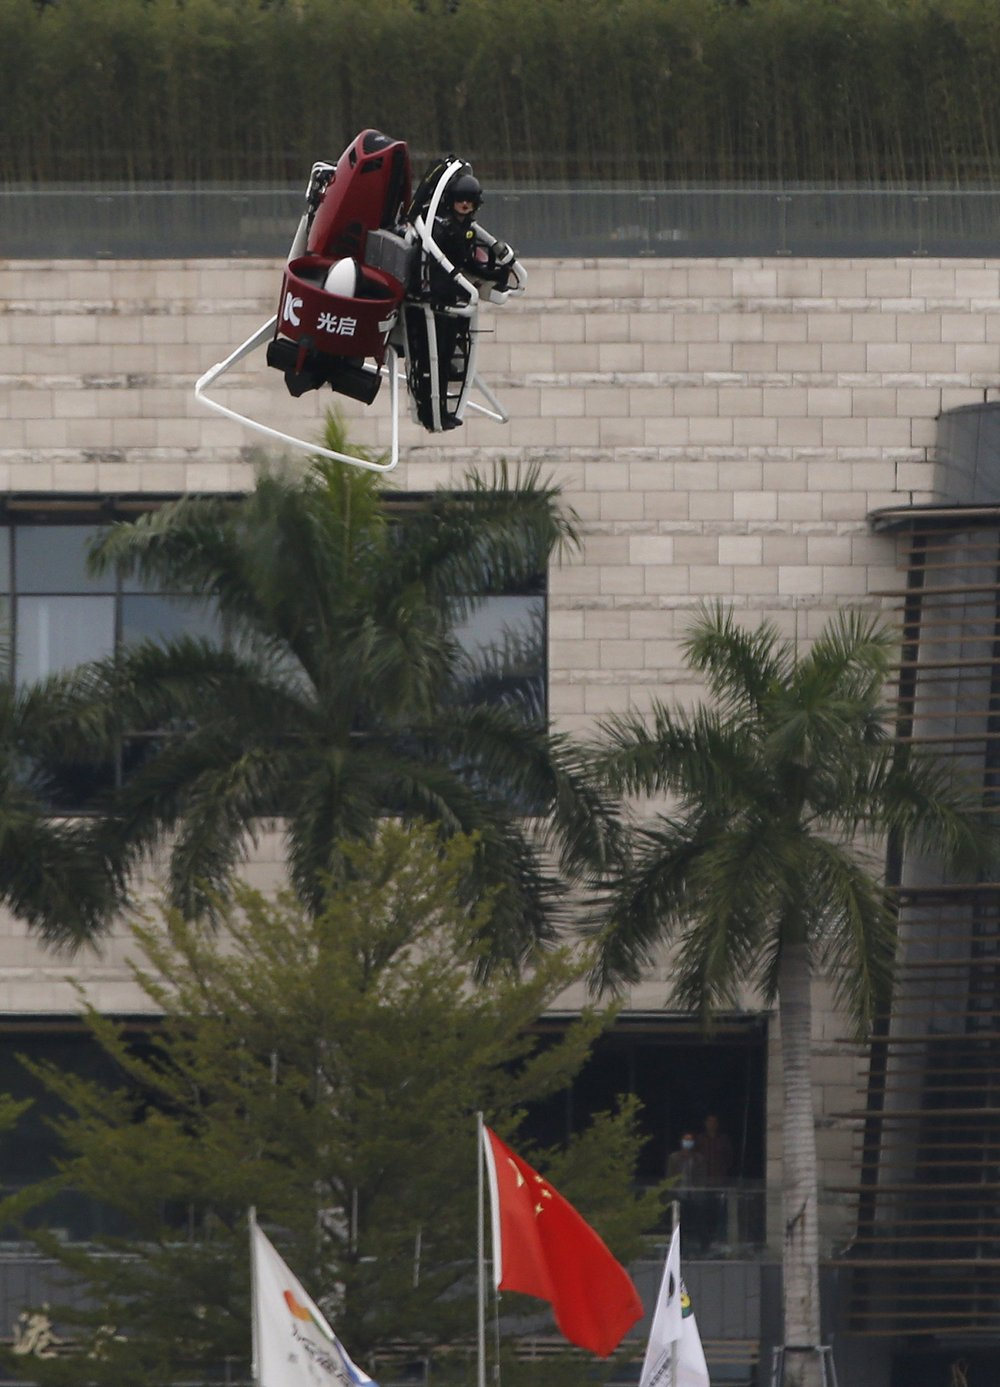 Michael Read from New Zealand-based Martin Aircraft flies on a Martin Jetpack during a demonstration in Shenzhen